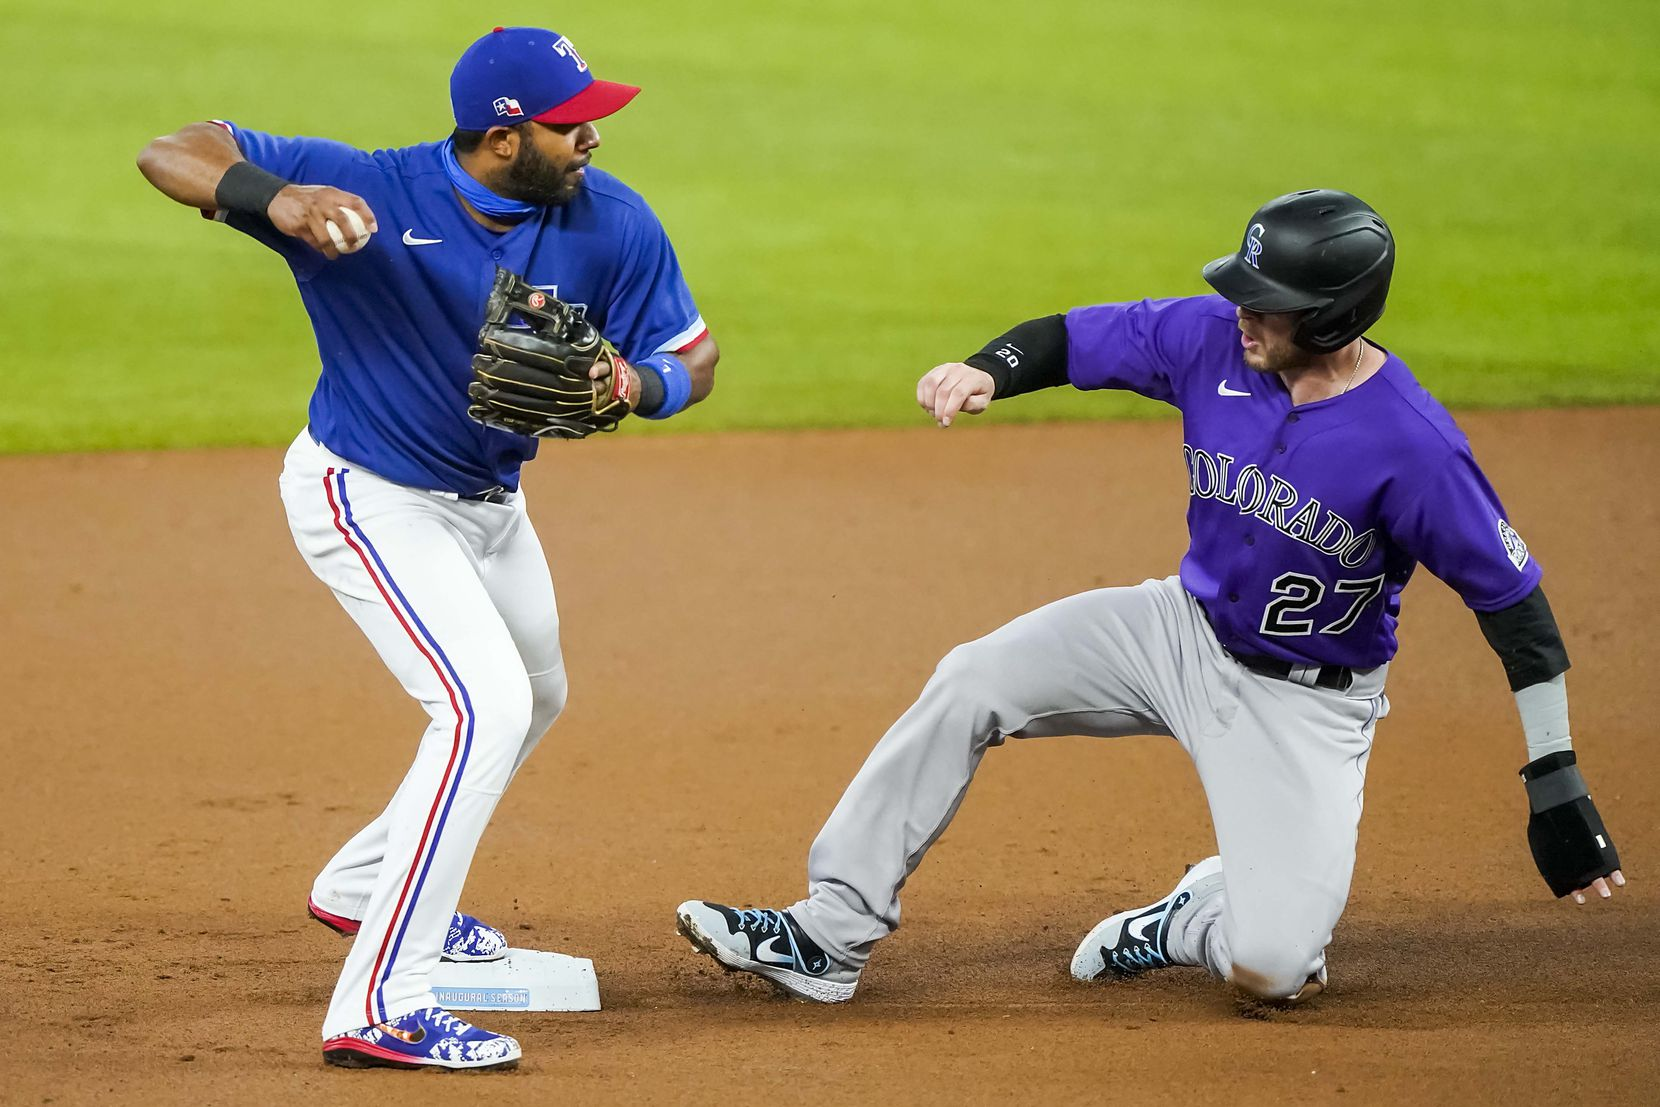 Colorado Rockies shortstop Trevor Story is out as second base as Texas Rangers shortstop Elvis Andrus turns a double play during the first inning of an exhibition game at Globe Life Field on Wednesday, July 22, 2020.